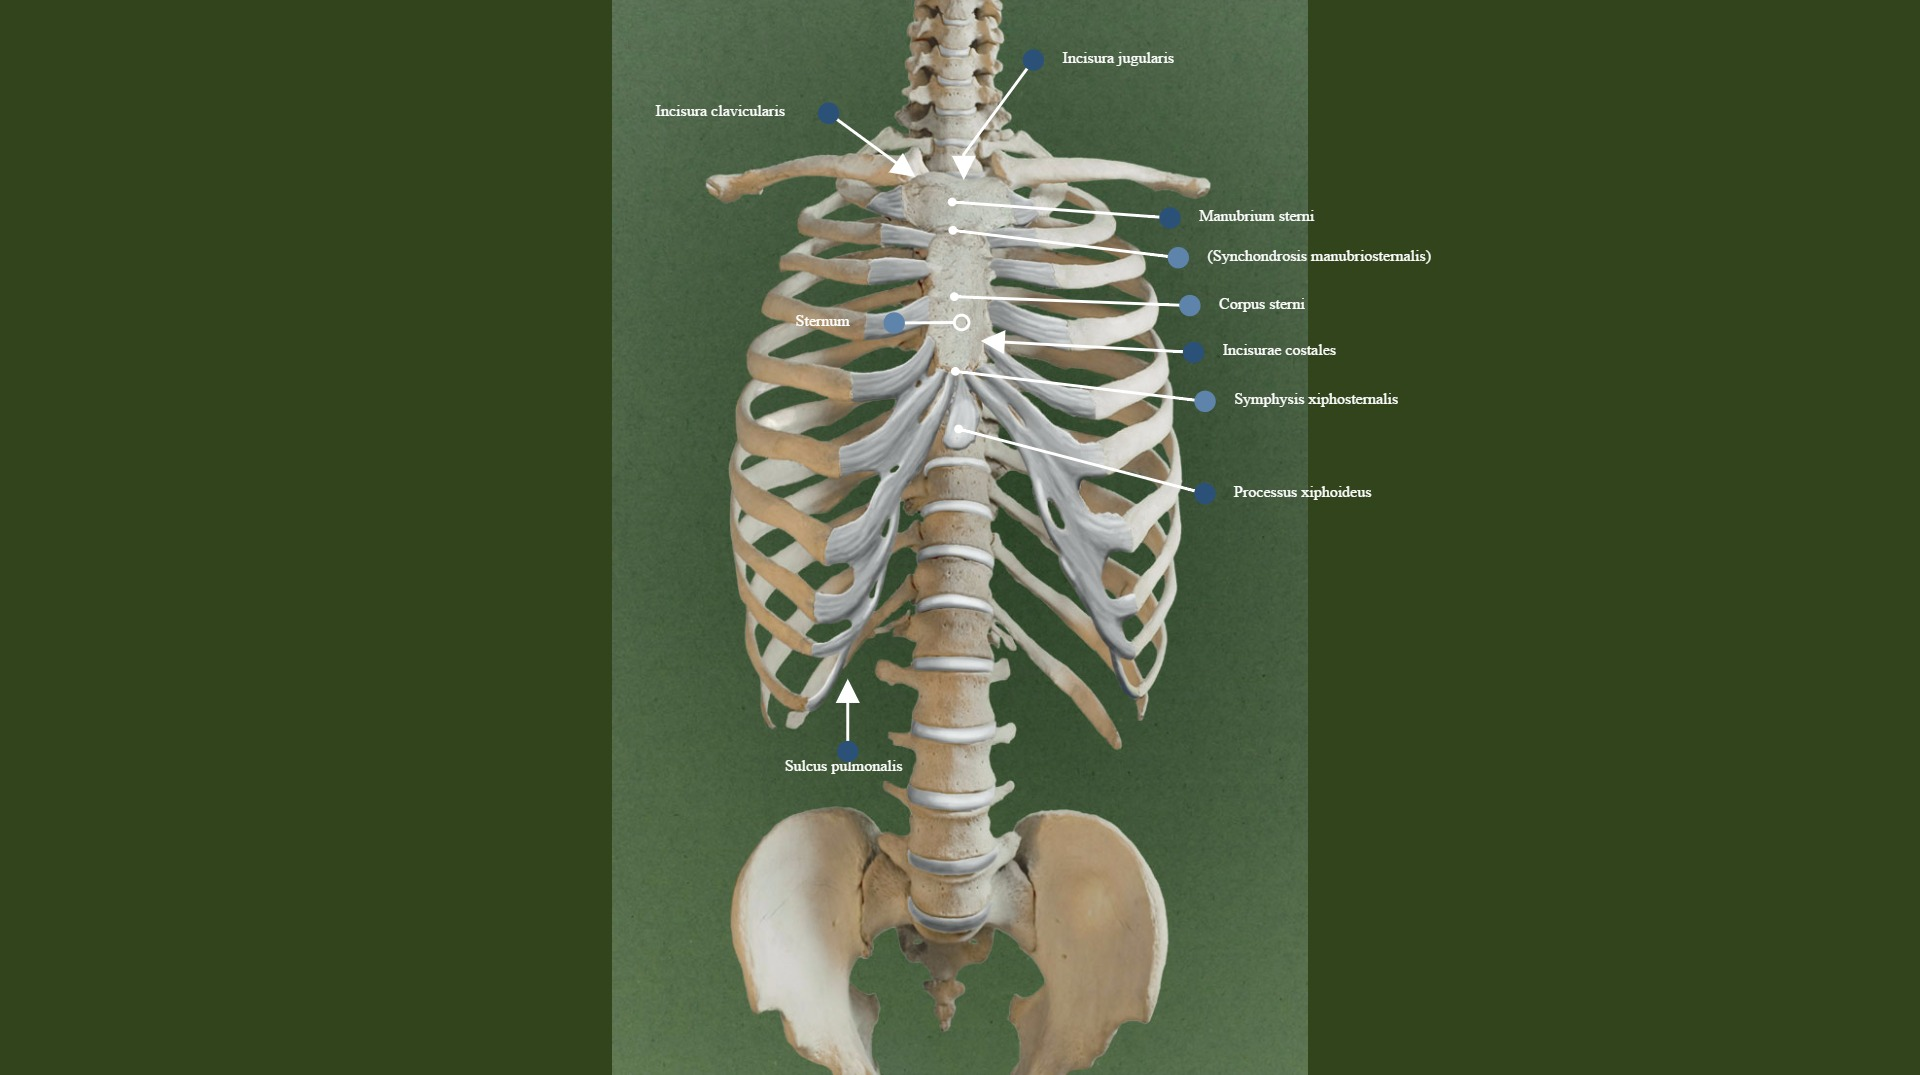 Anterior View Of The Thoracic Skeleton Learn about synchondrosis with free interactive flashcards. terminologia anatomica org